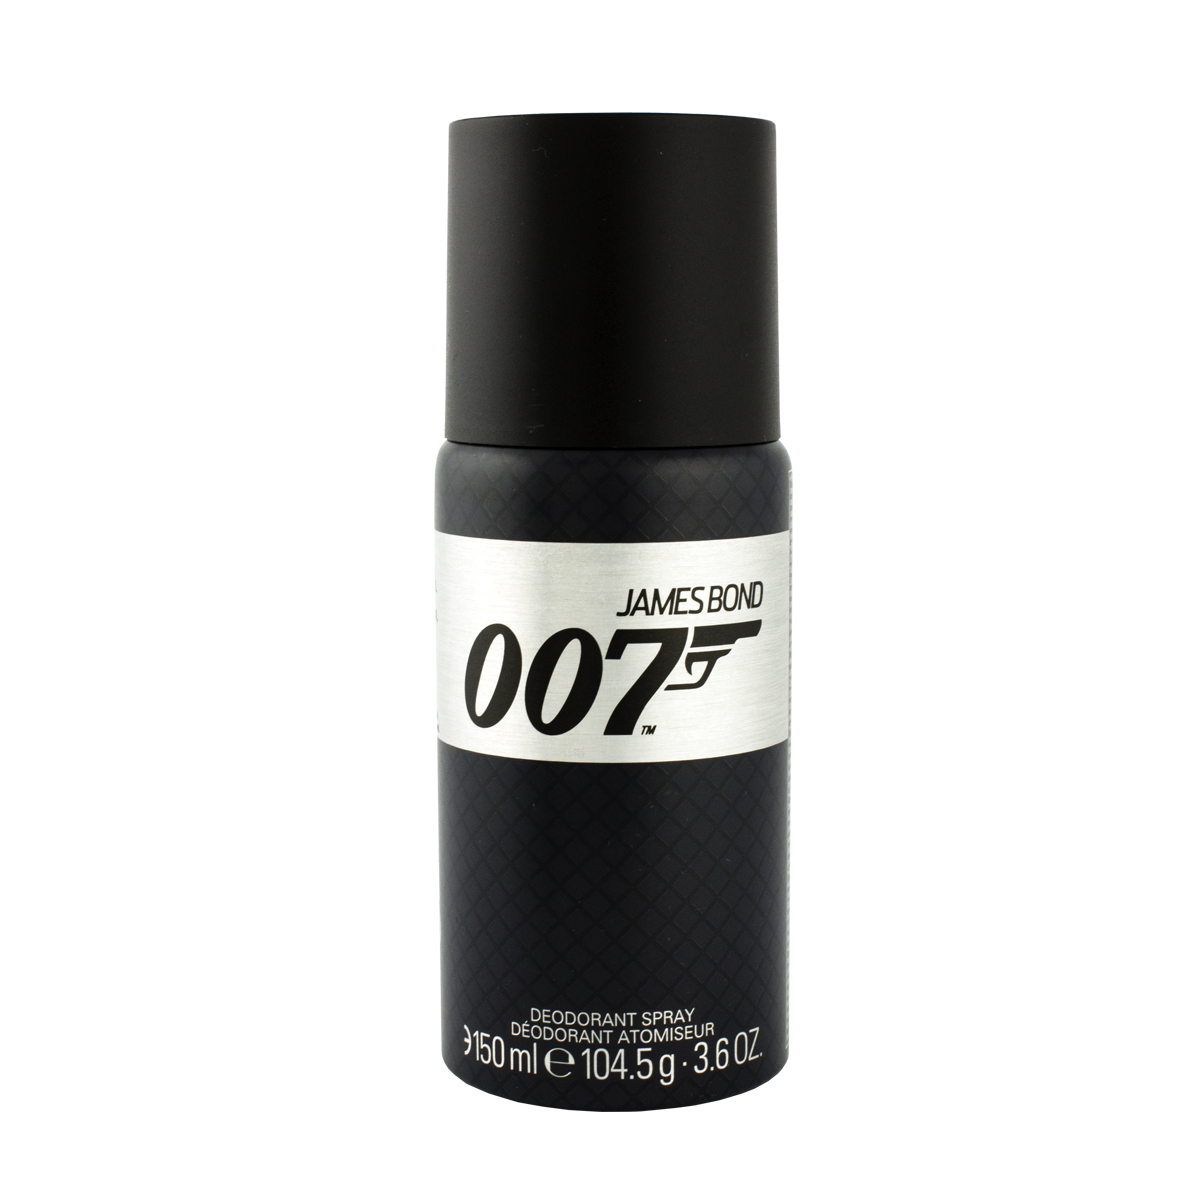 James Bond James Bond 007 Deodorant im Spray 150 ml (man) 75886